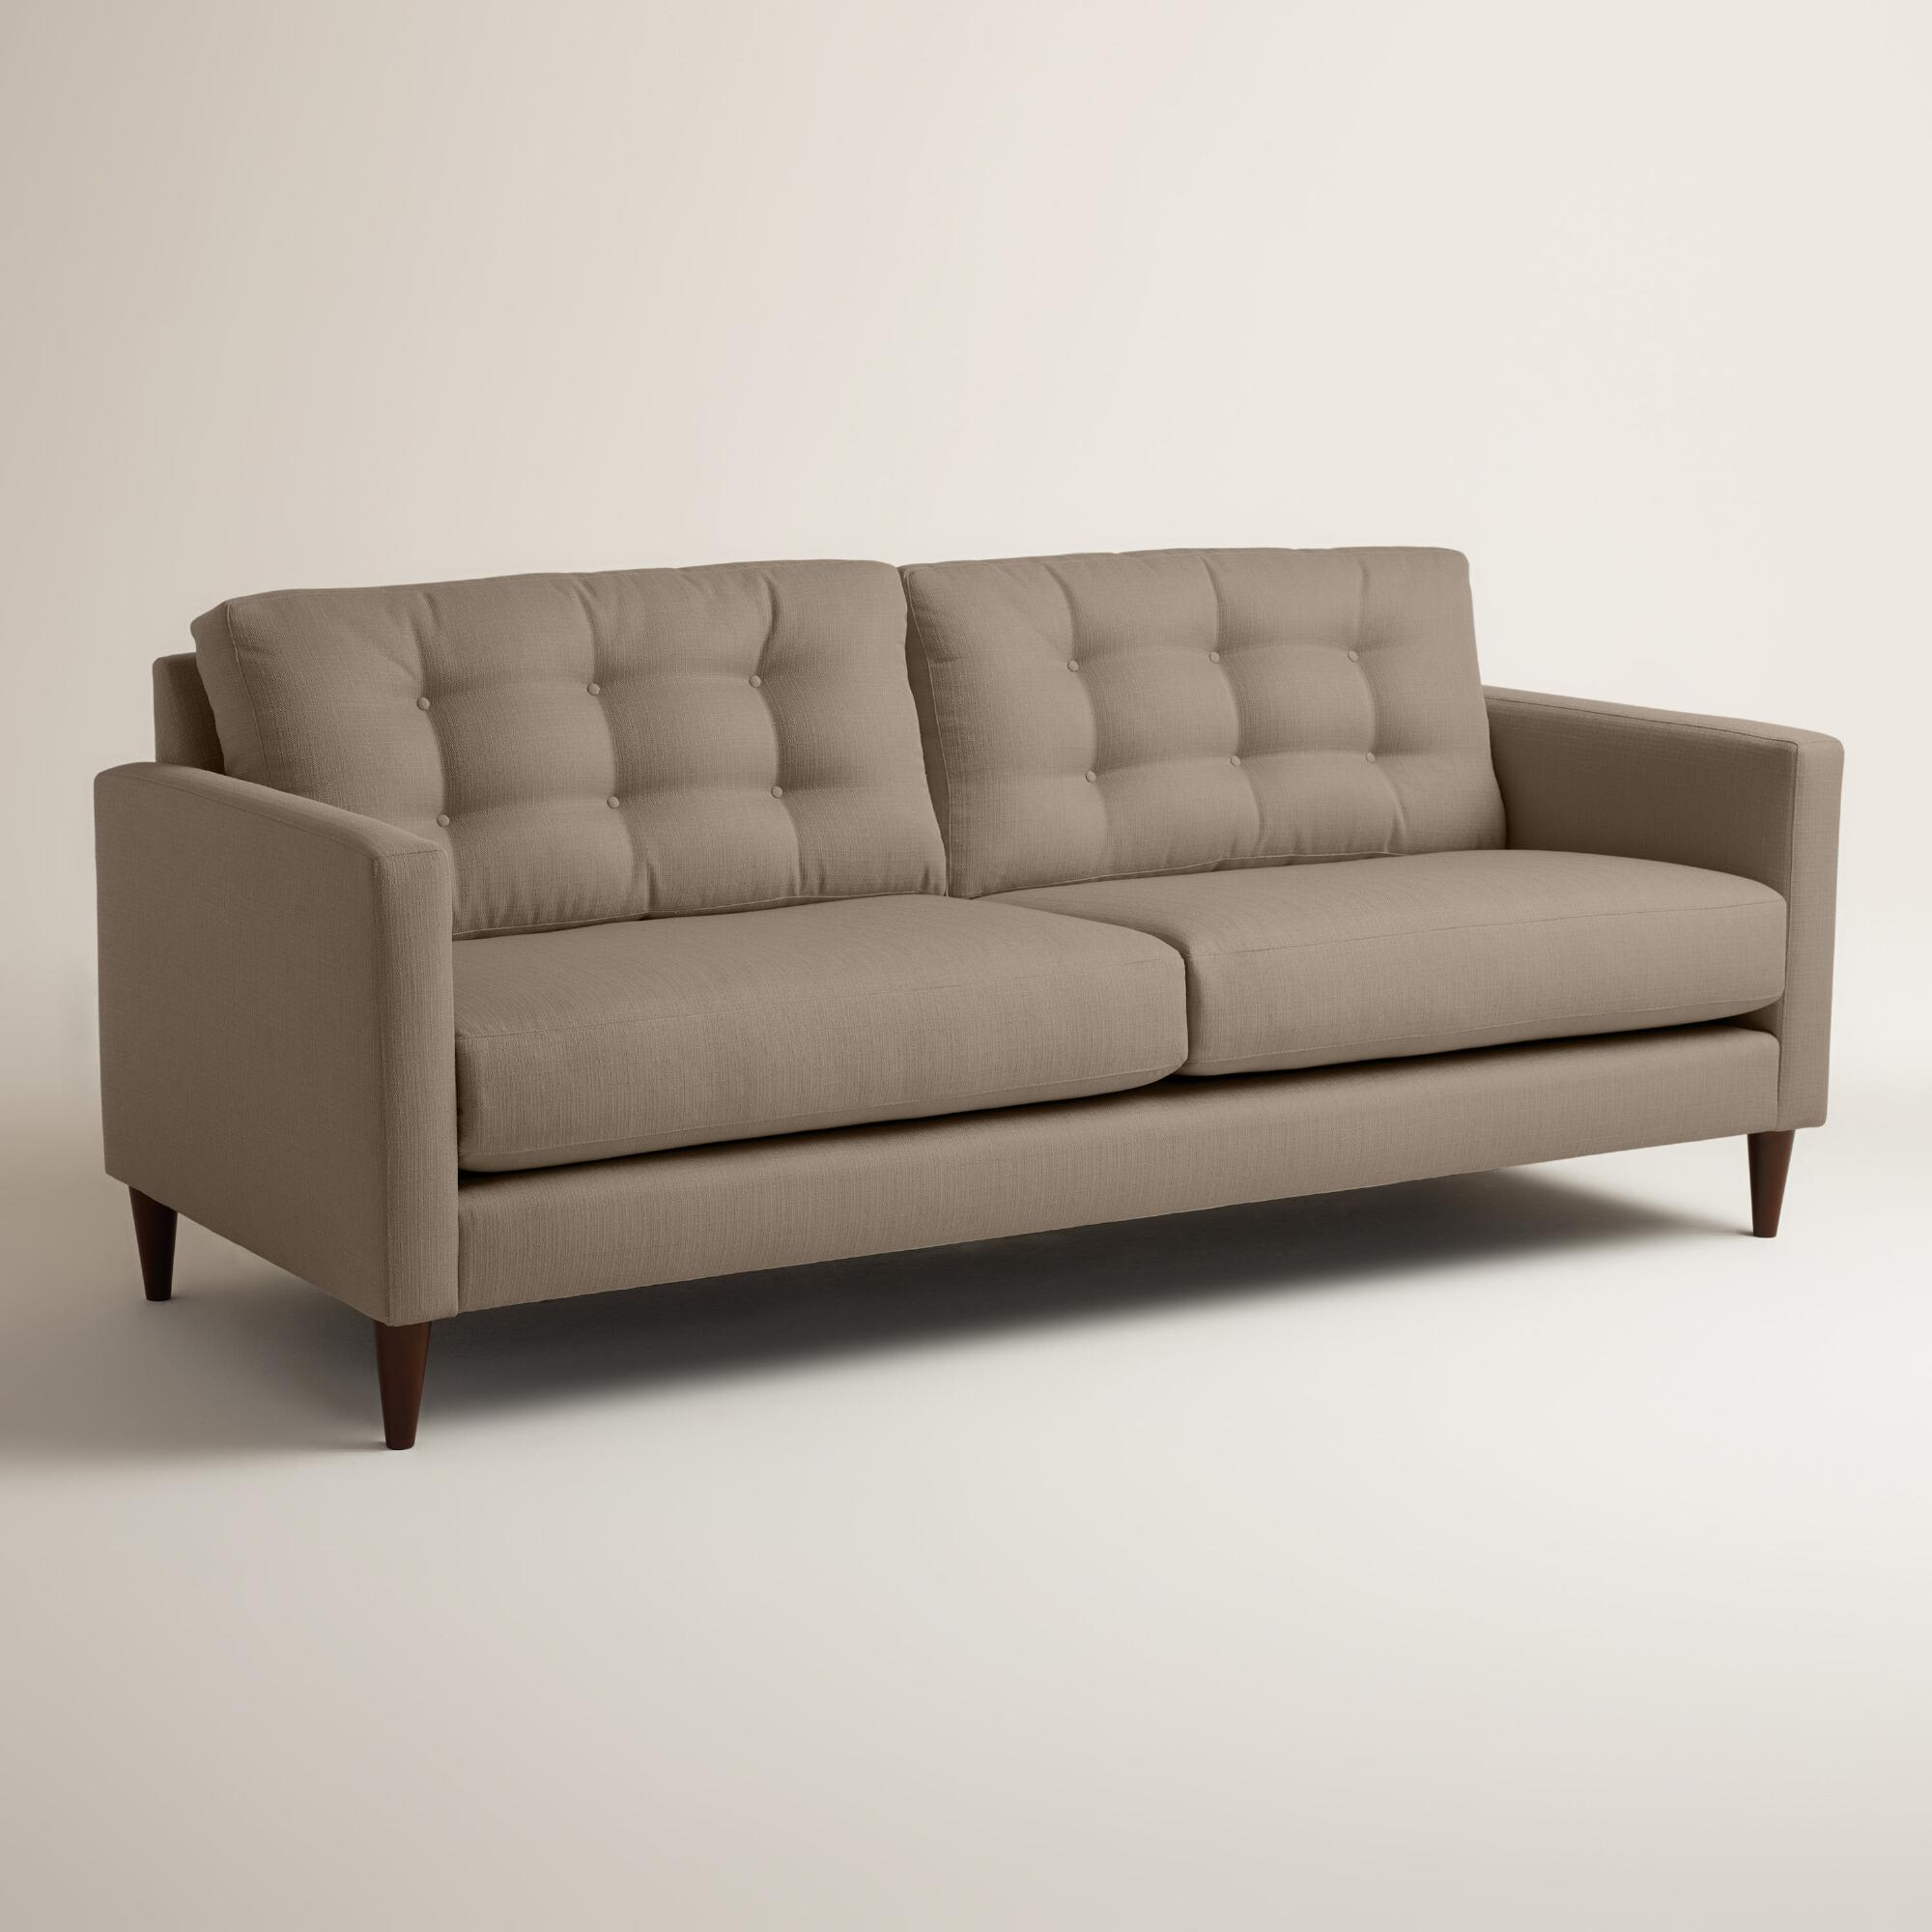 Textured Woven Ryker Upholstered Sofa World Market